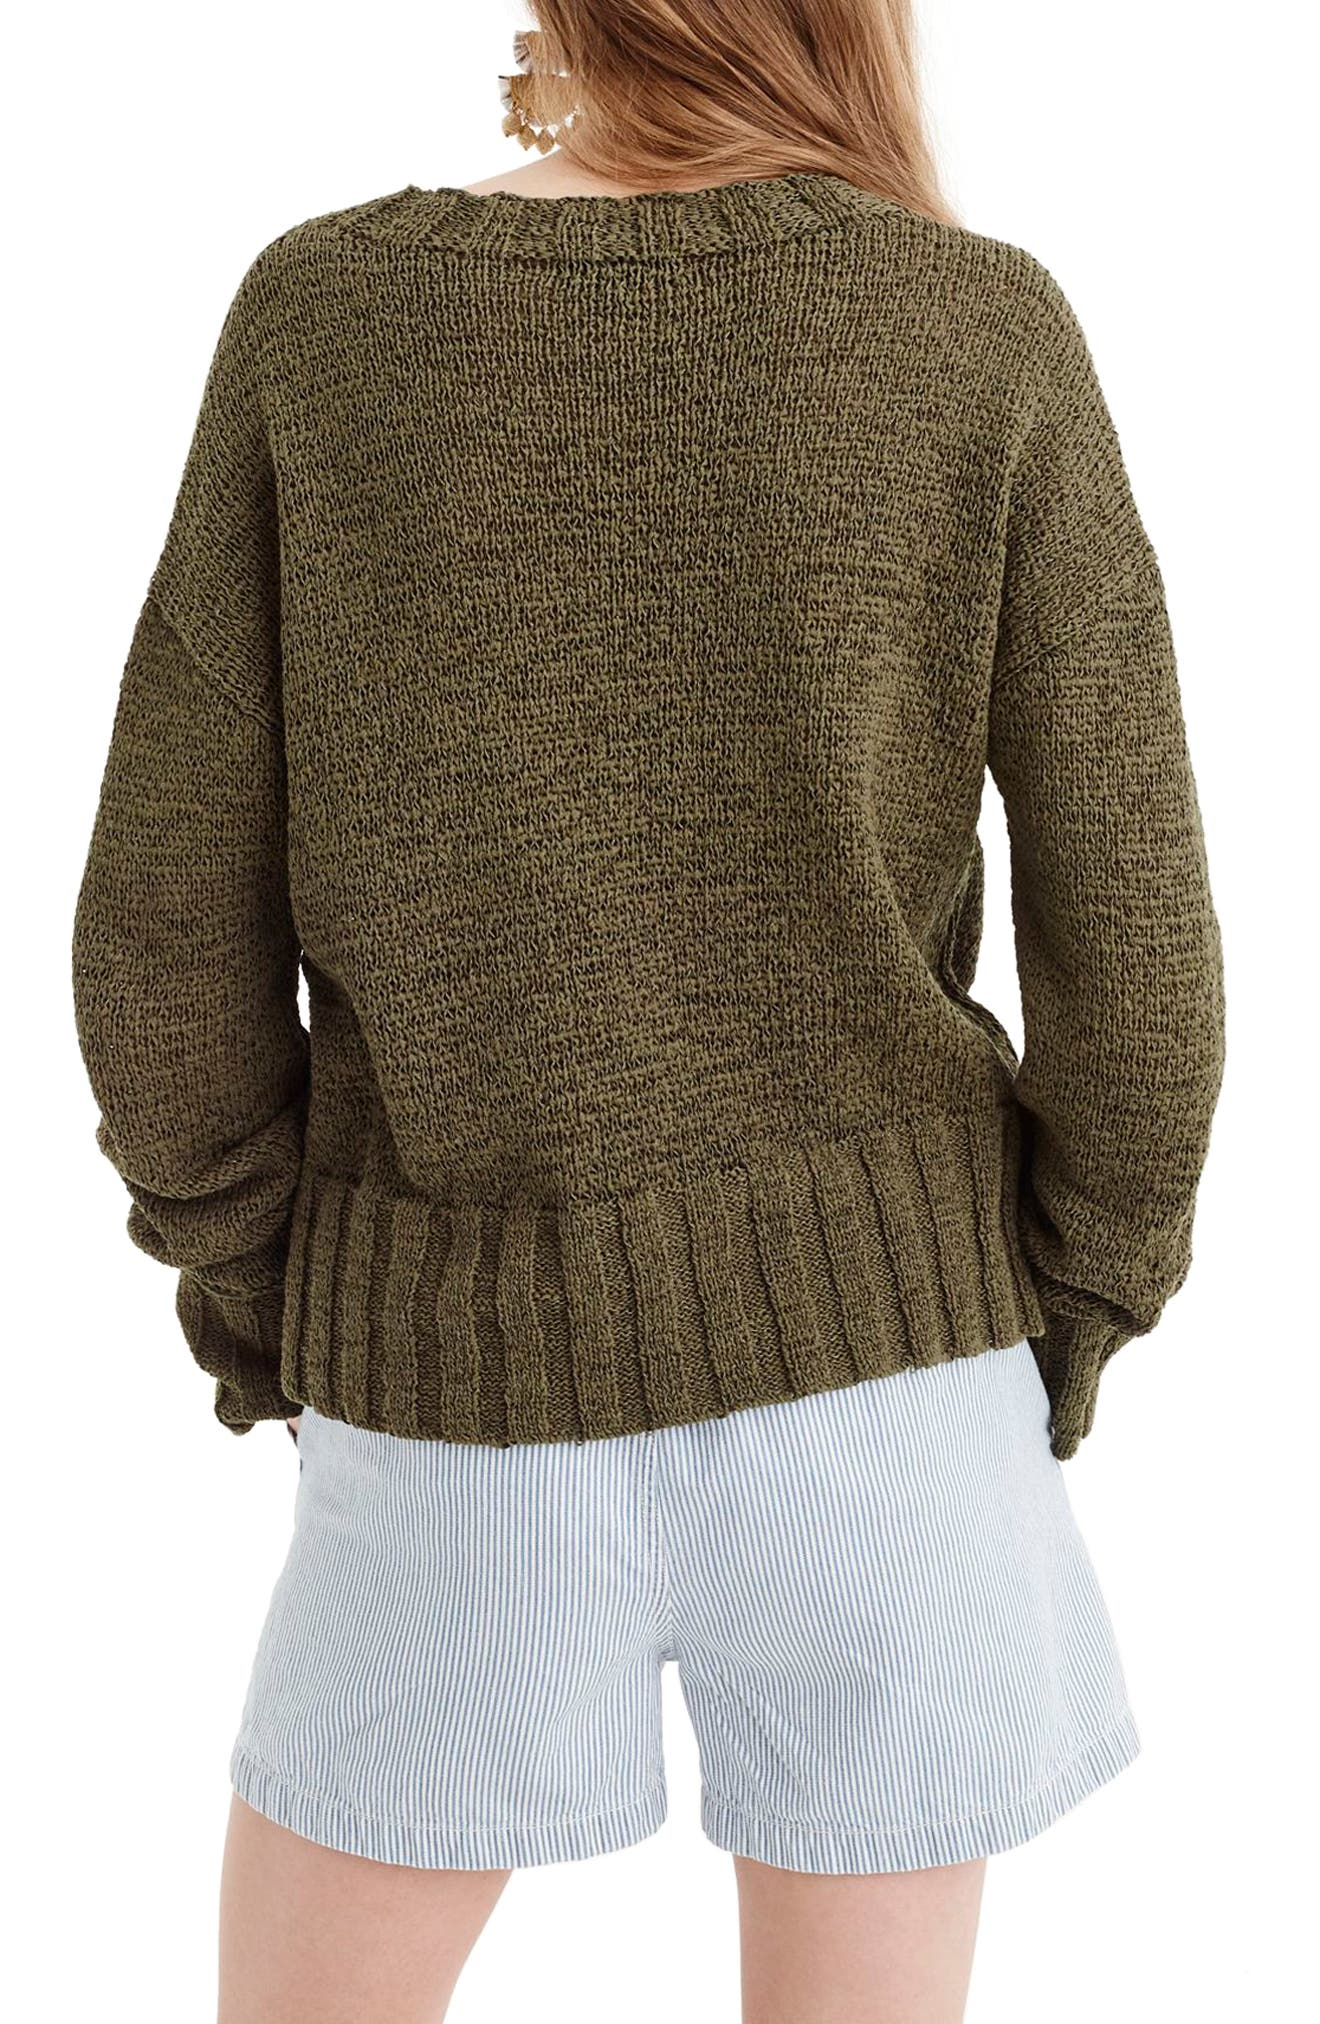 Erica Heathered Cotton Wide Rib Crewneck Sweater,                             Alternate thumbnail 2, color,                             Loden Green